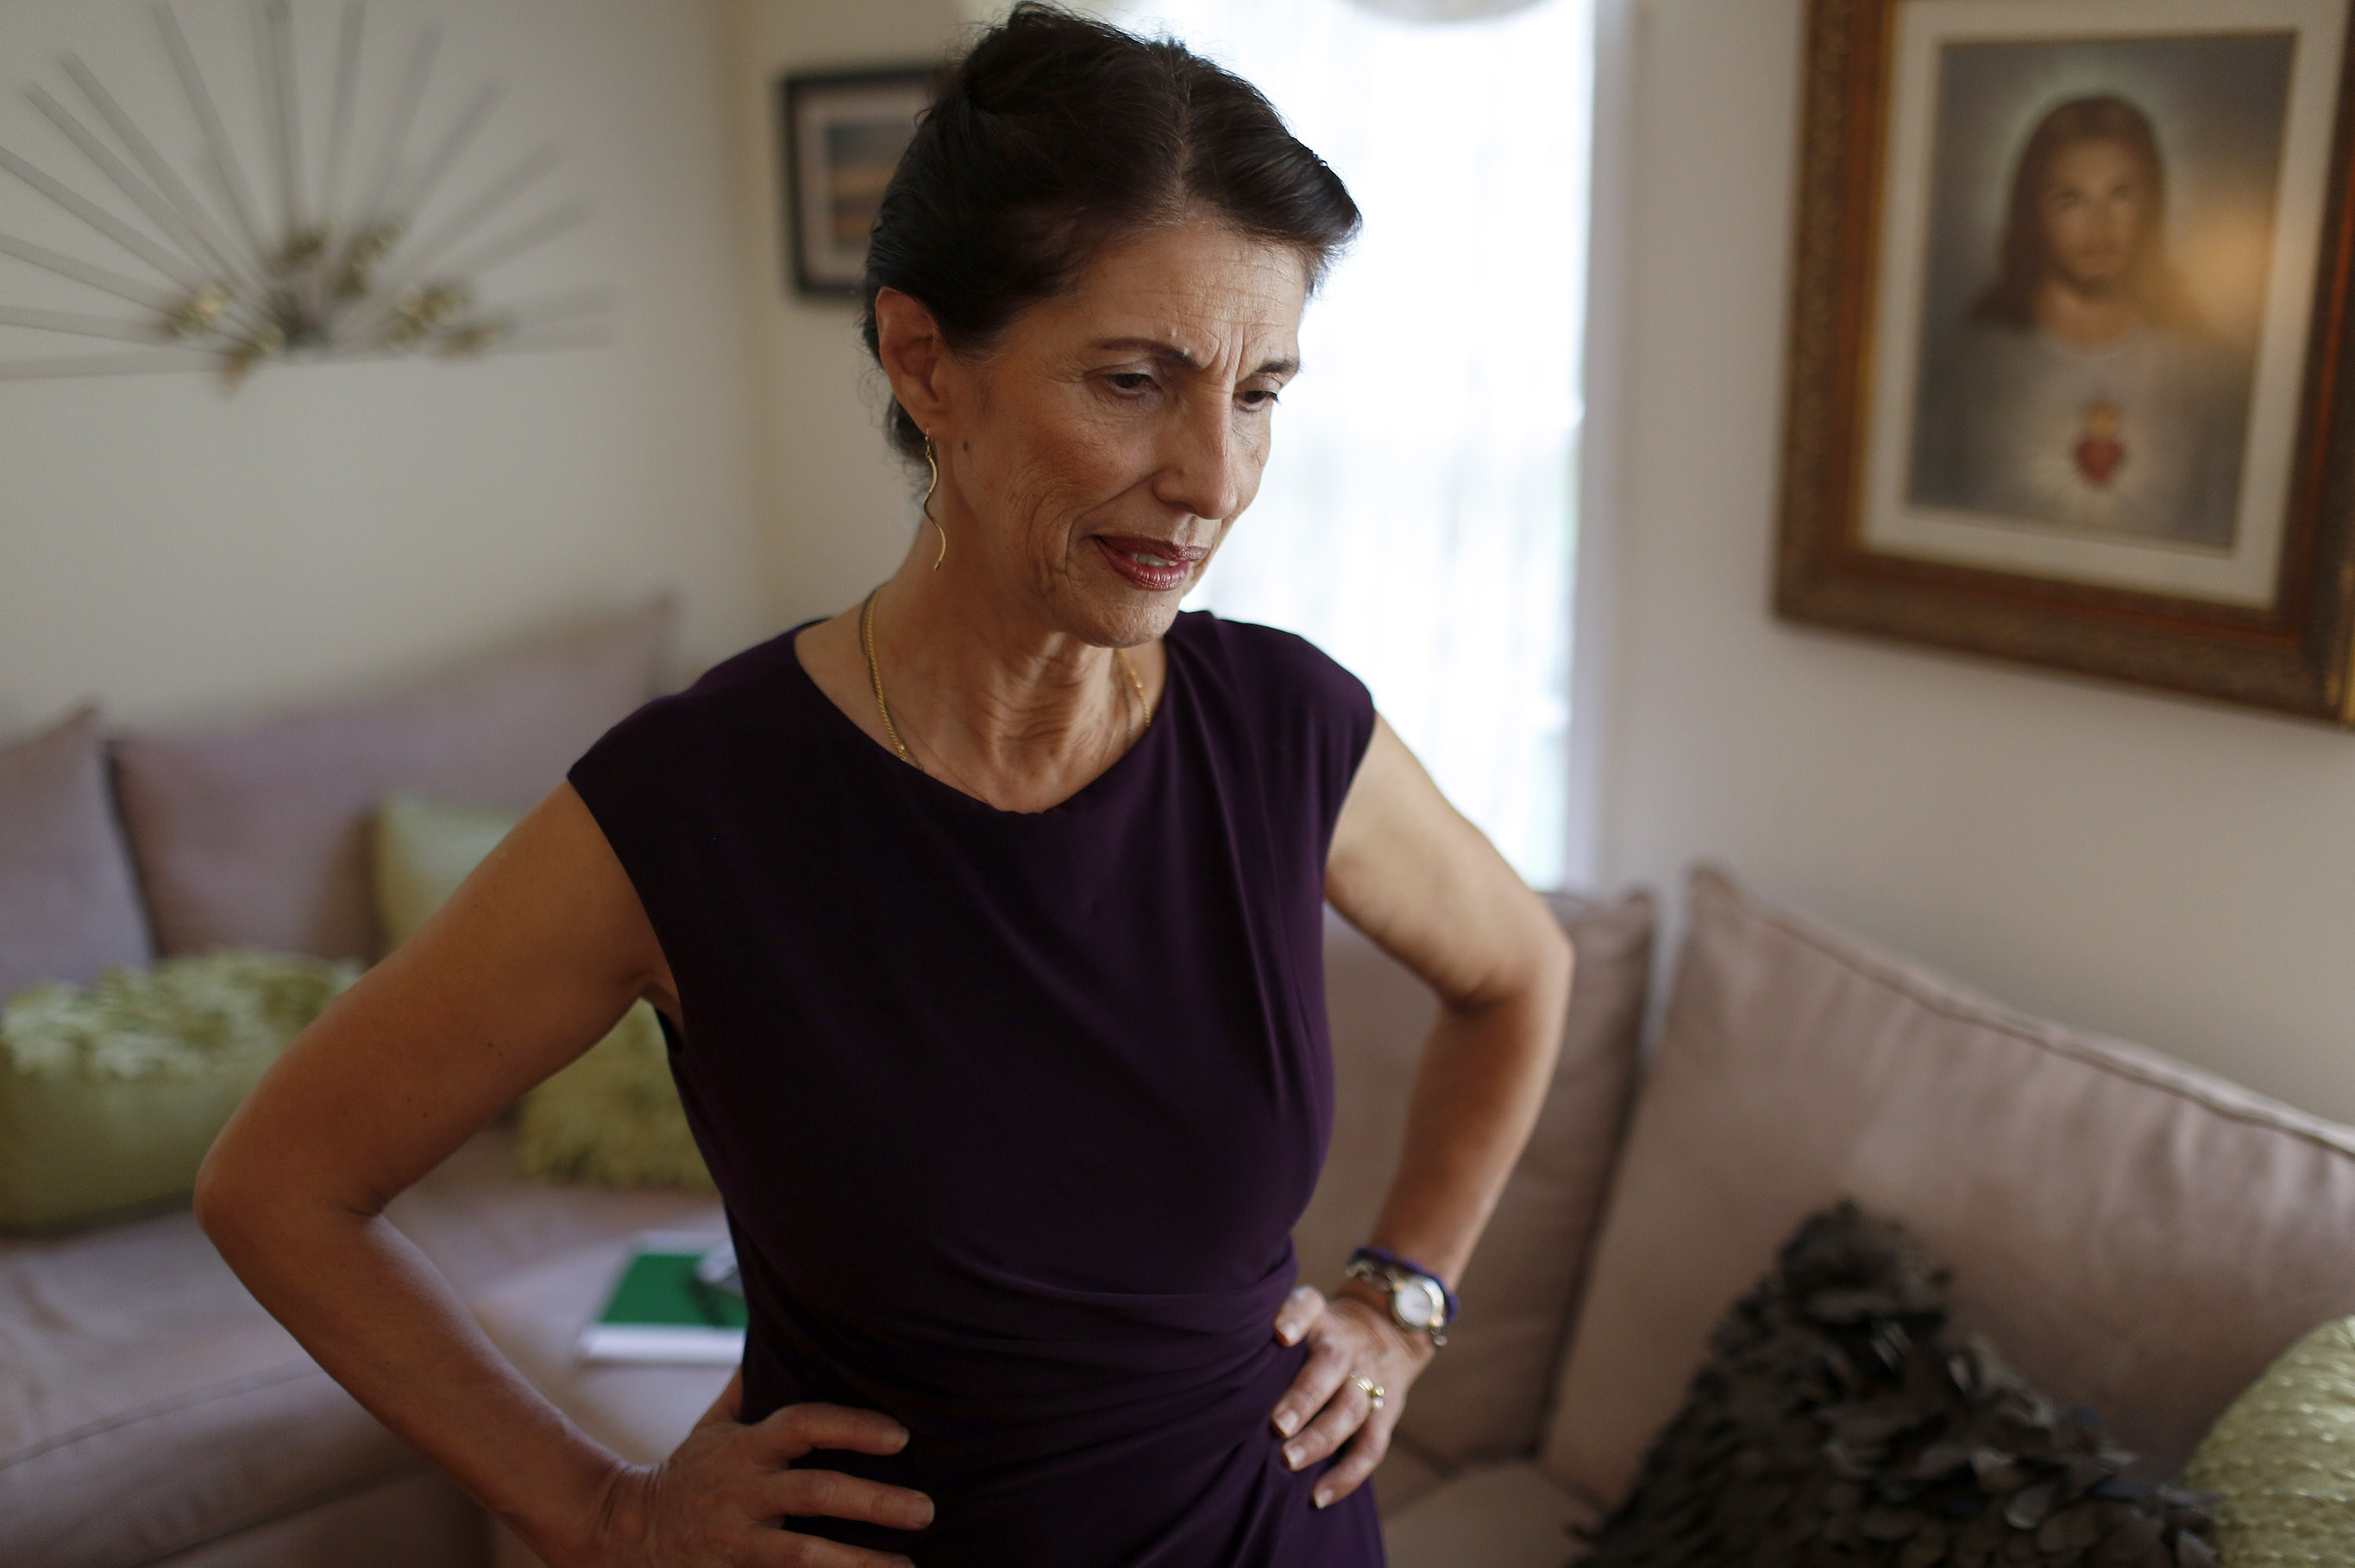 Diane Foley, mother of James Foley, pauses for a moment during an interview at her home August 24, 2014, in Rochester, New Hampshire.